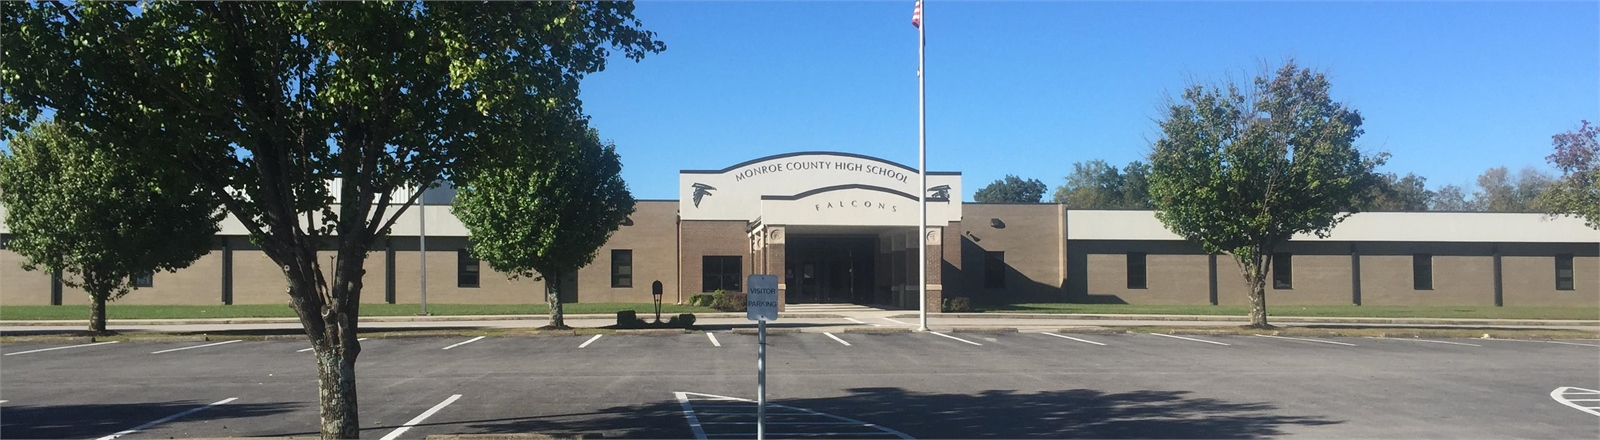 Monroe County High School